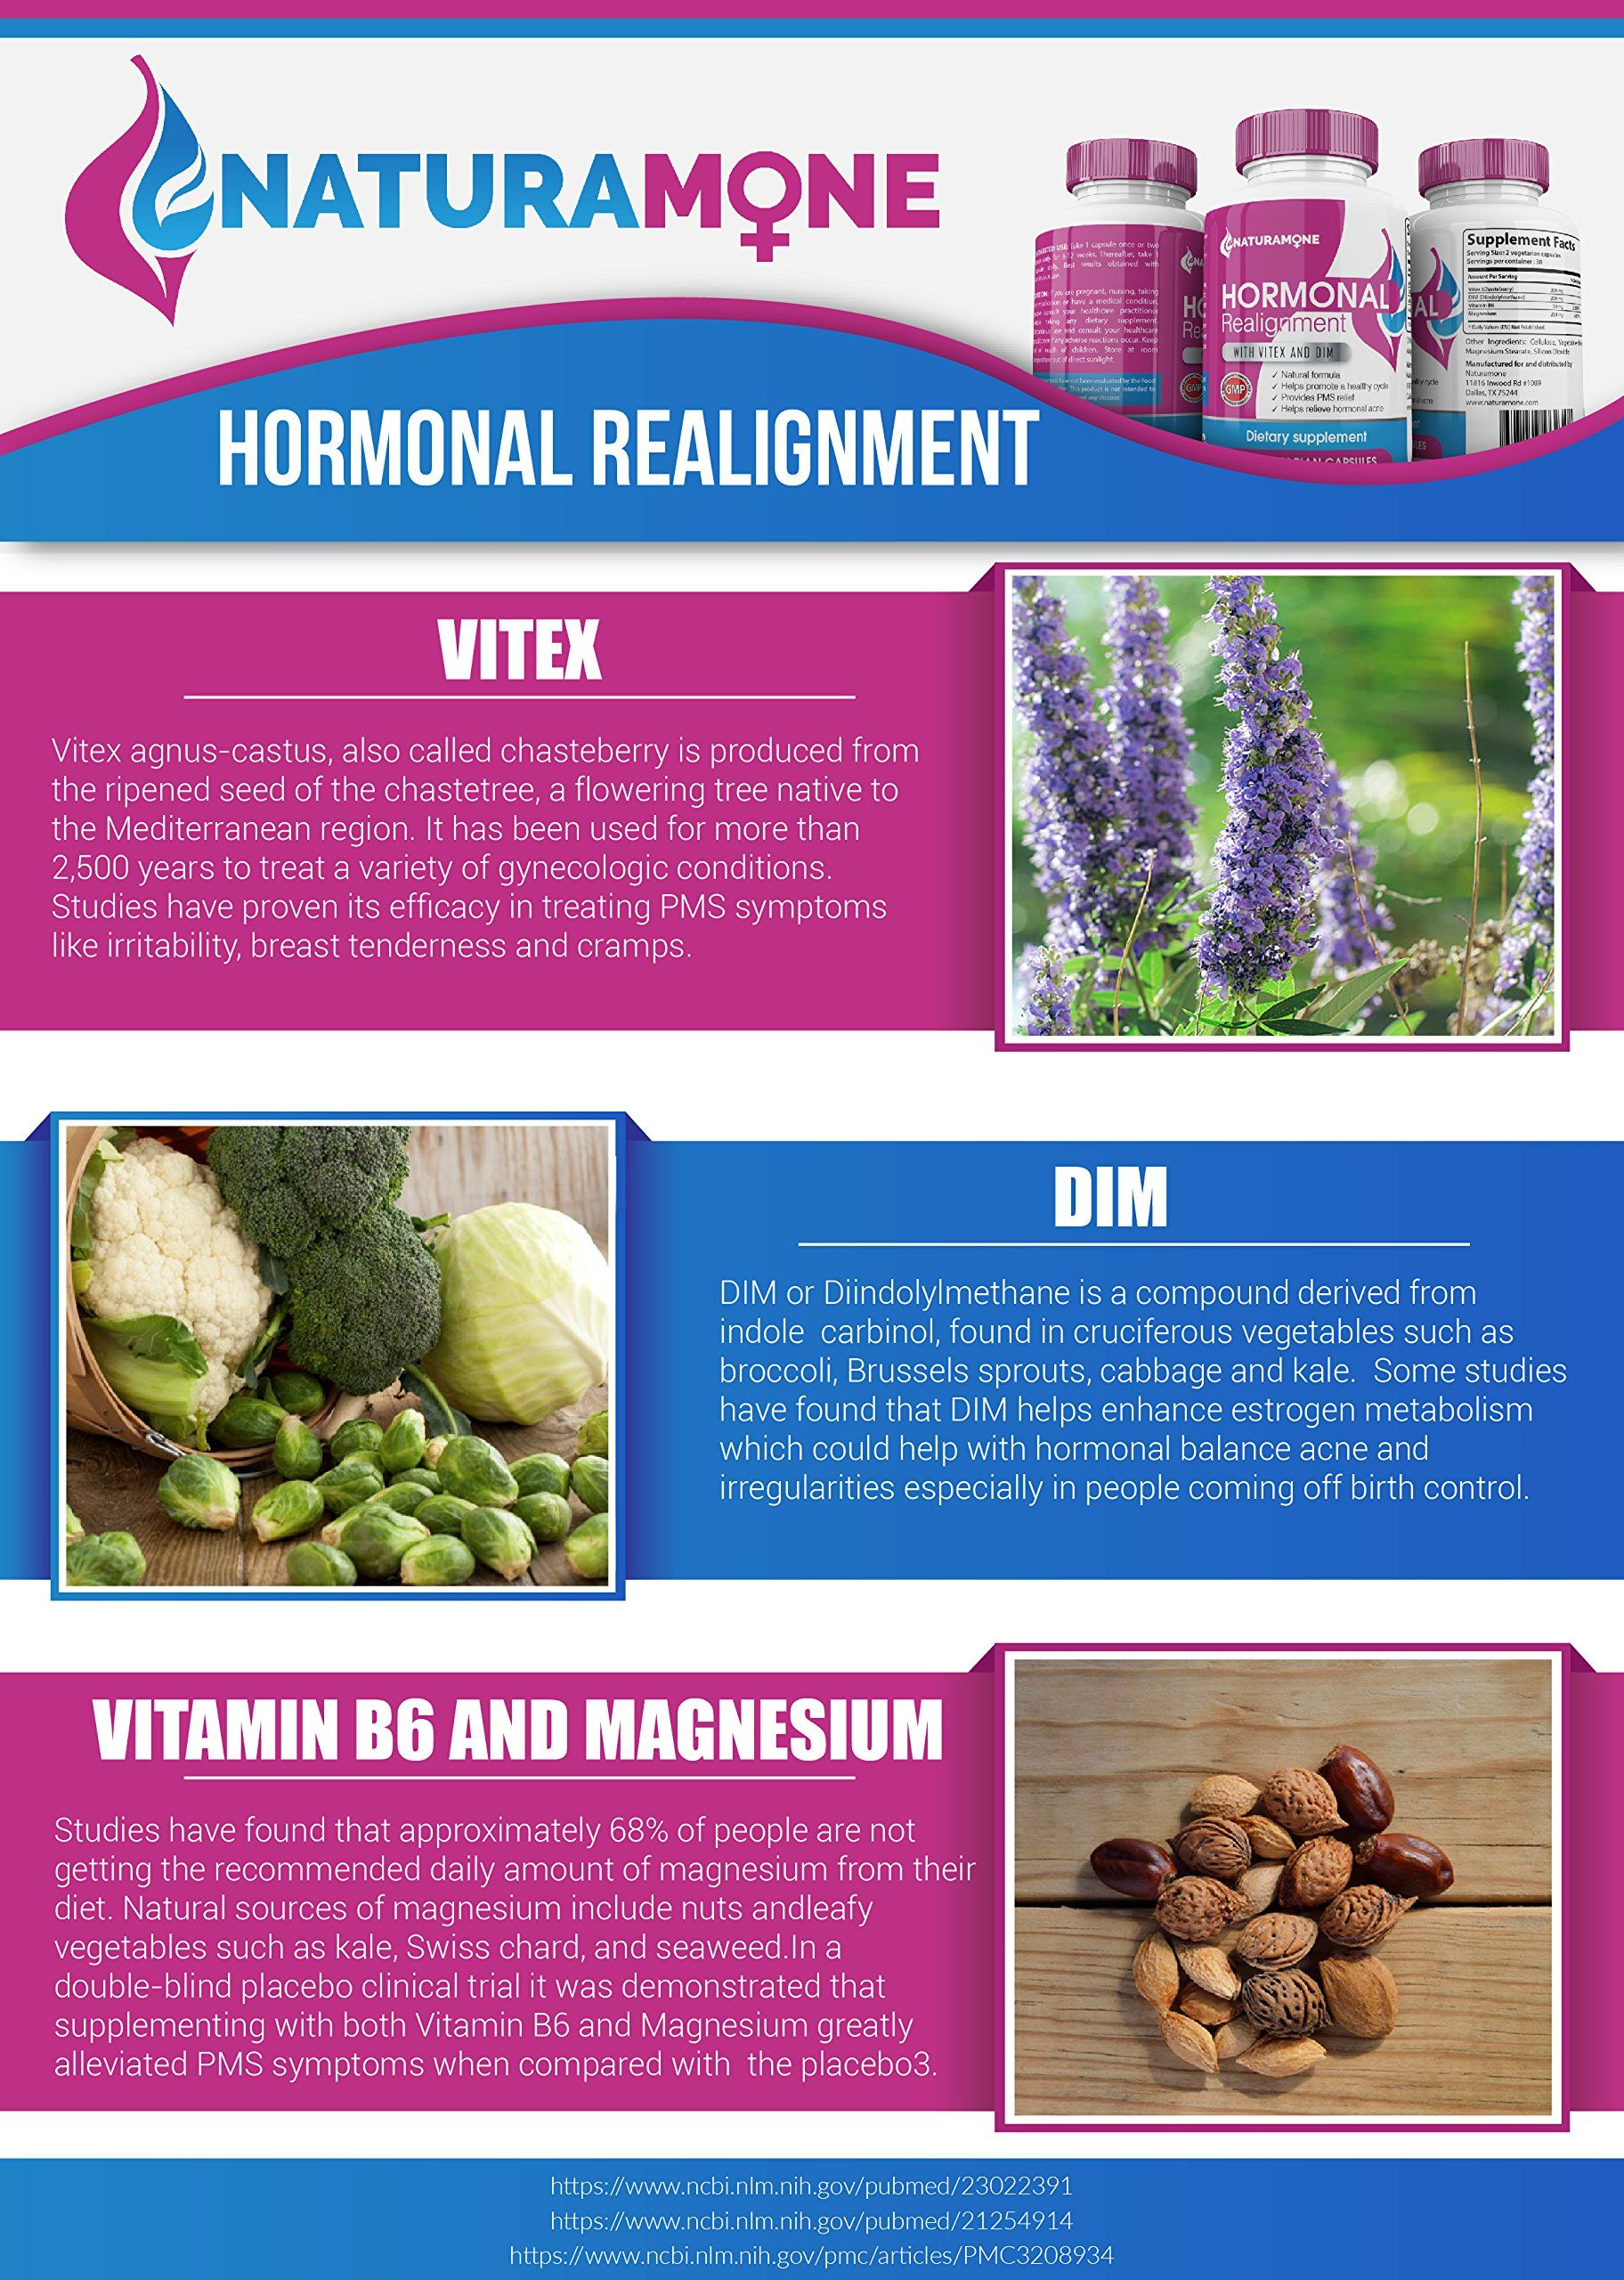 Fertility Pcos - Naturamone DIM/Vitex Natural Hormone